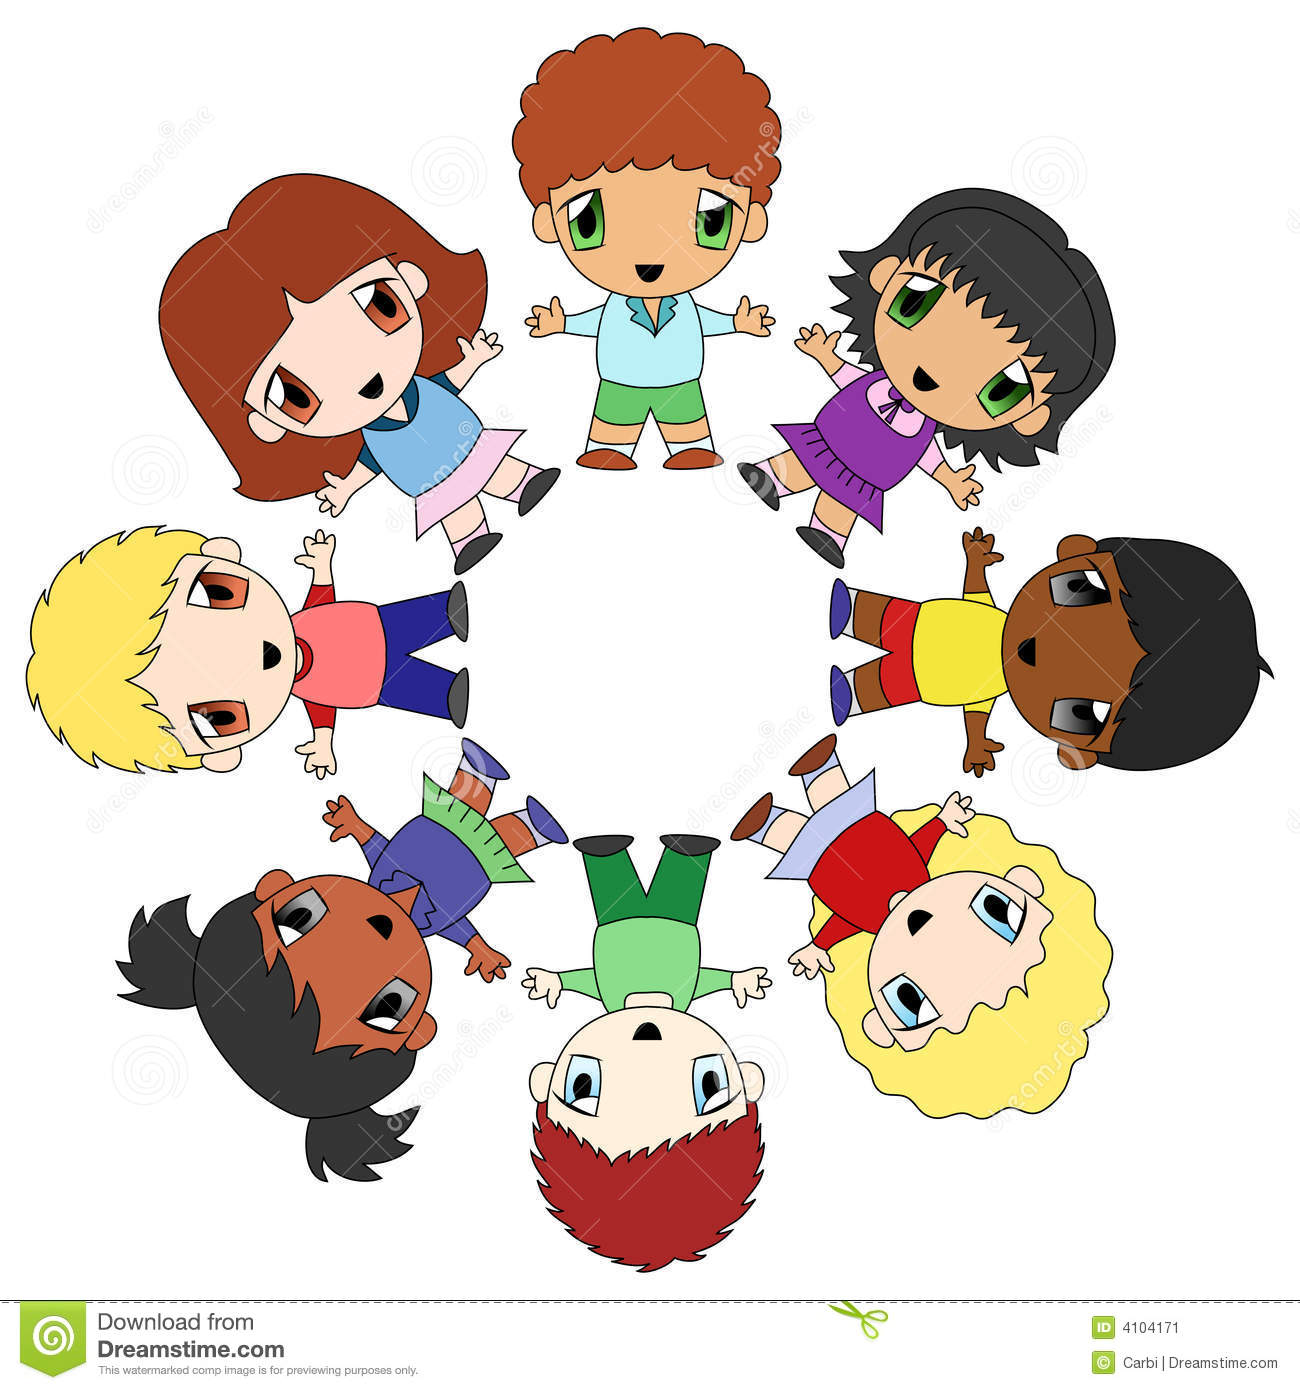 Friendship clipart circle time. Of friends free download